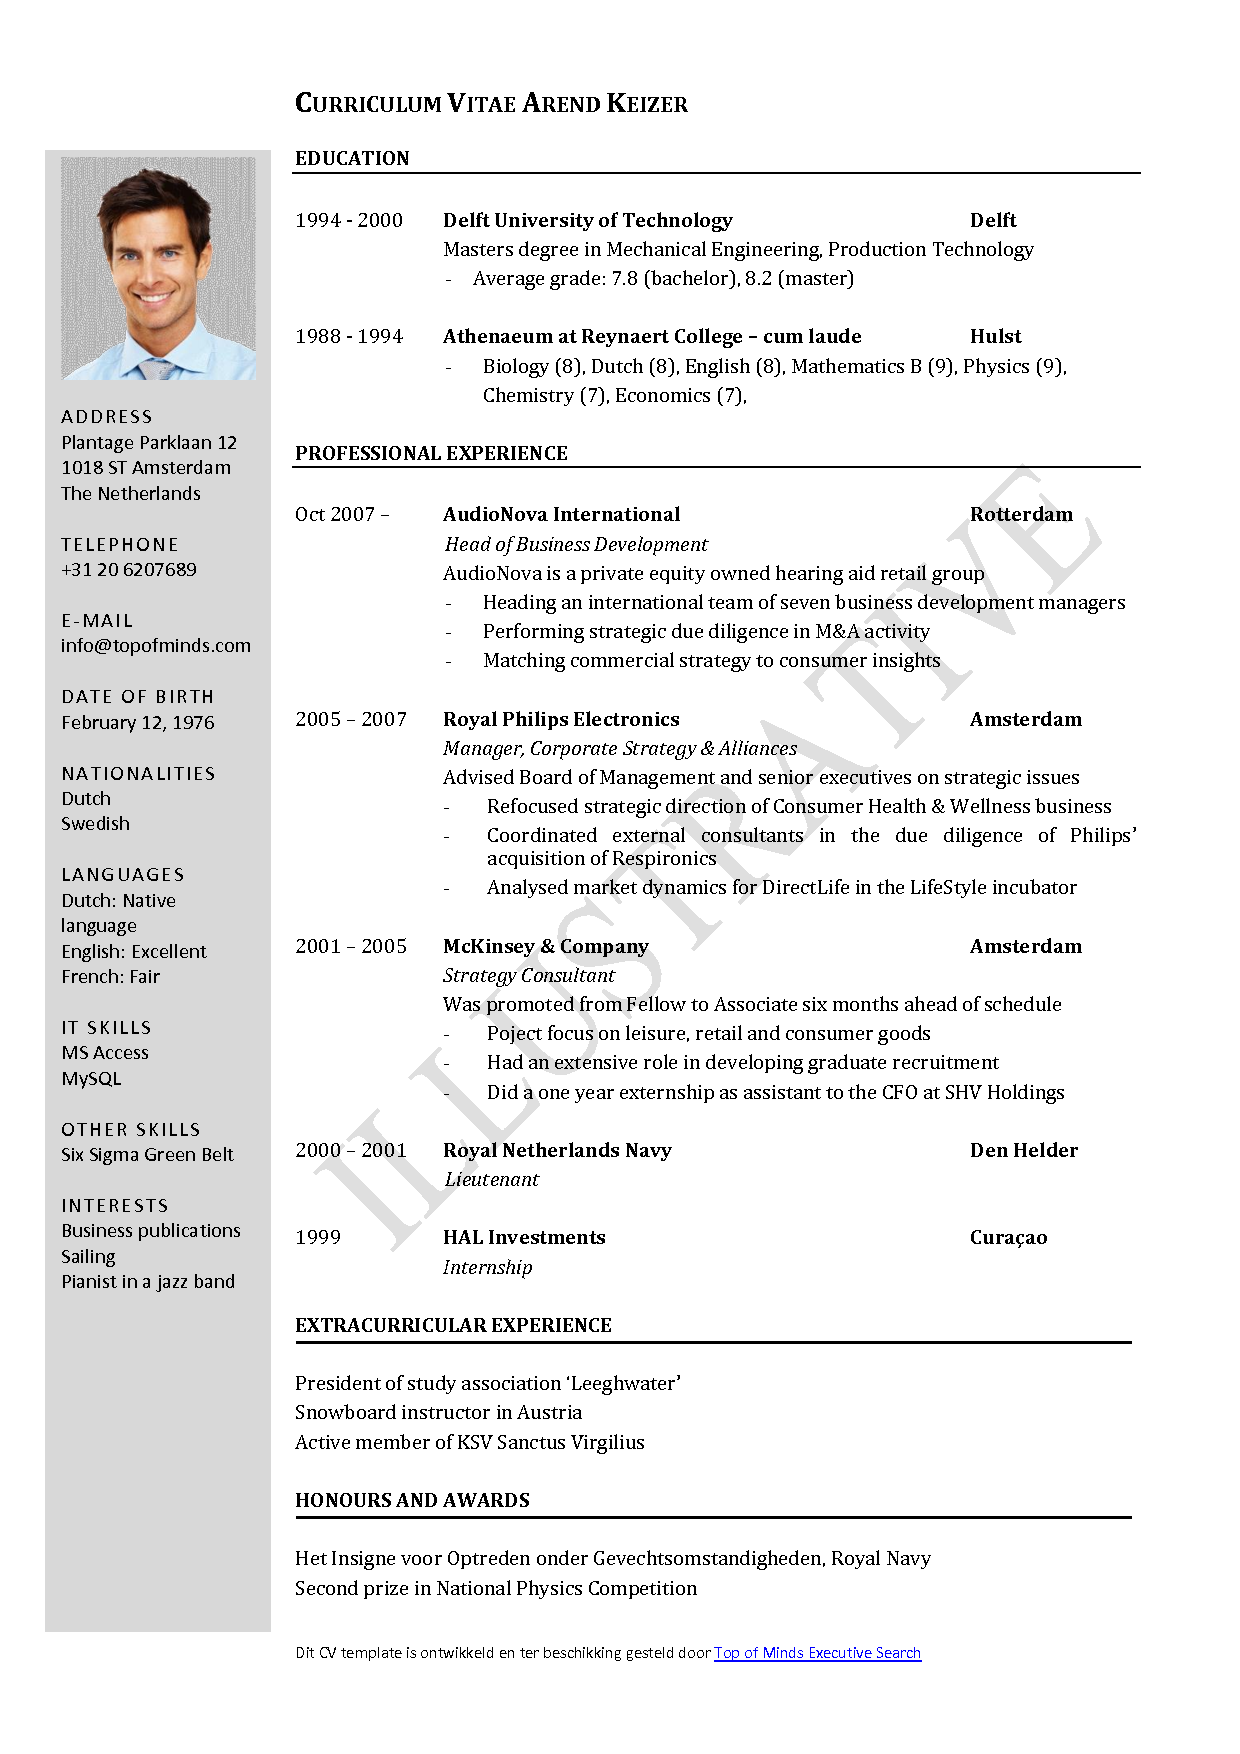 sample resume template word free curriculum vitae template word download when free curriculum vitae template word